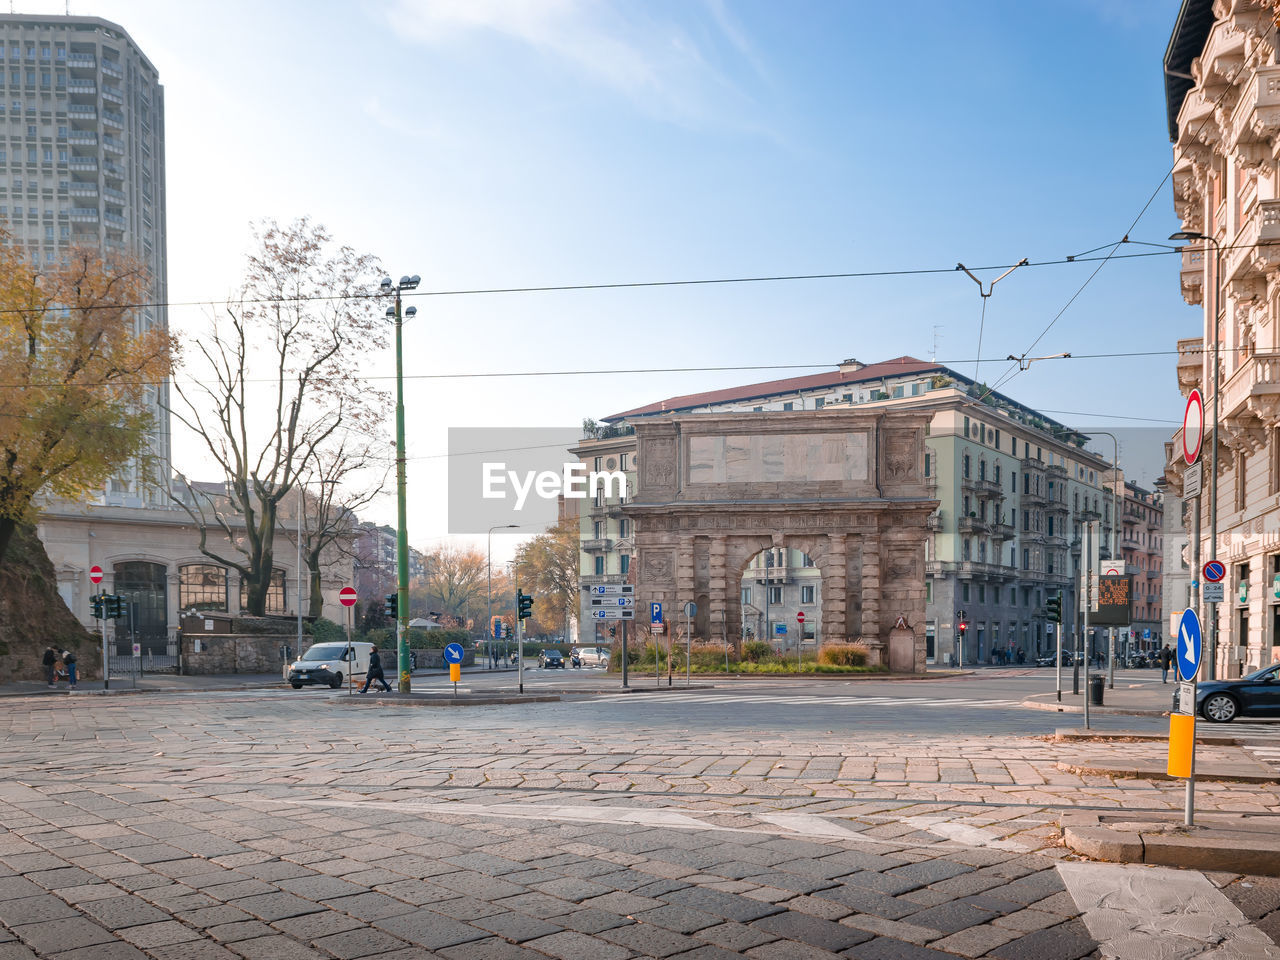 architecture, built structure, building exterior, city, sky, street, incidental people, building, nature, day, city life, transportation, outdoors, footpath, cobblestone, real people, city street, people, sunlight, road, paving stone